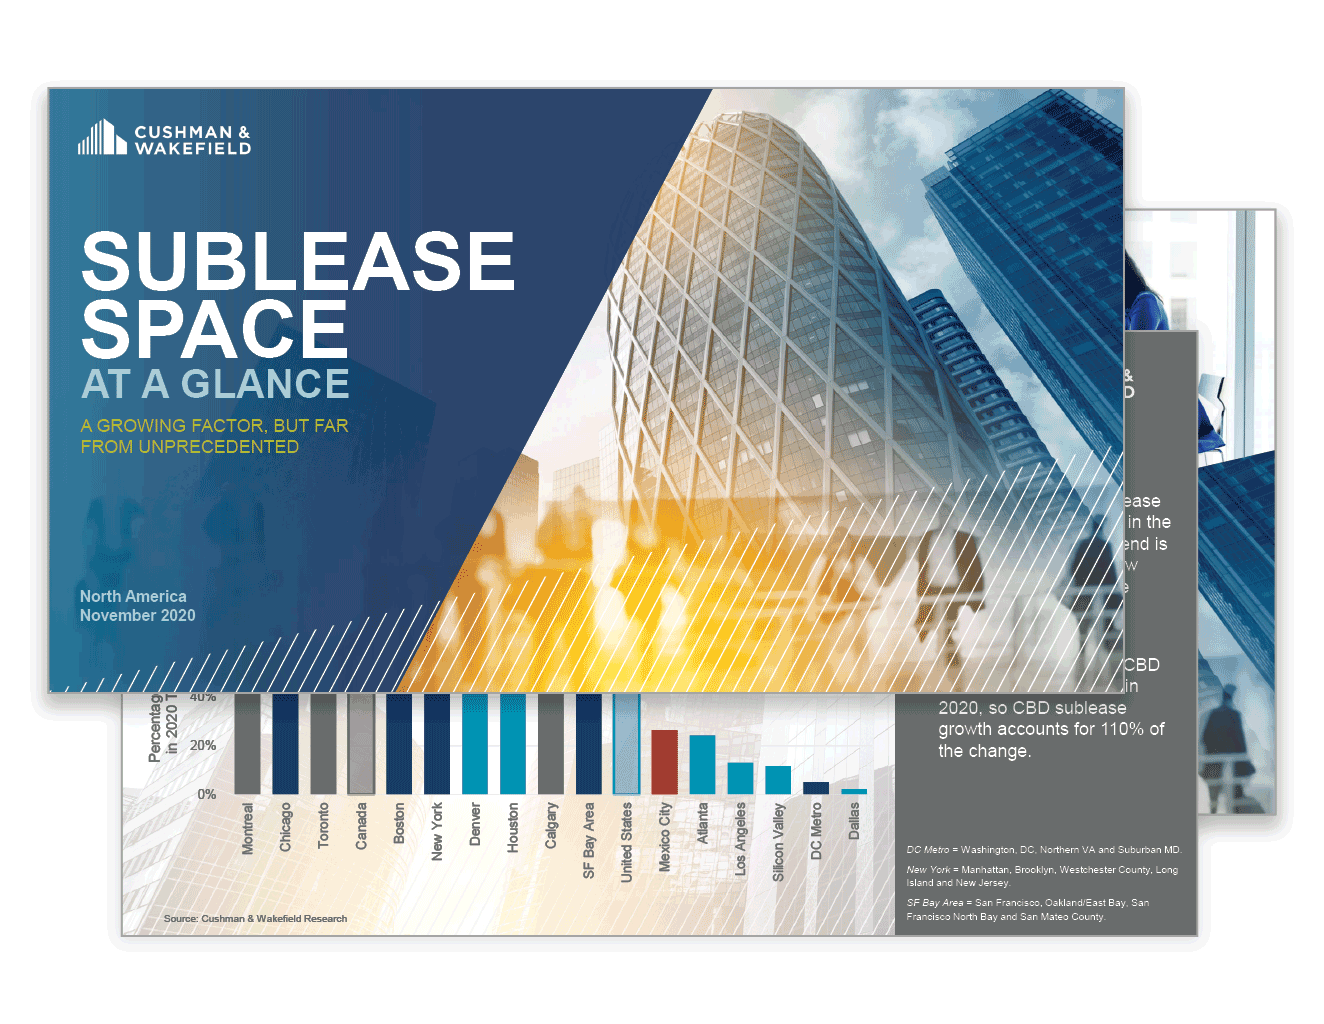 Sublease Space (image)